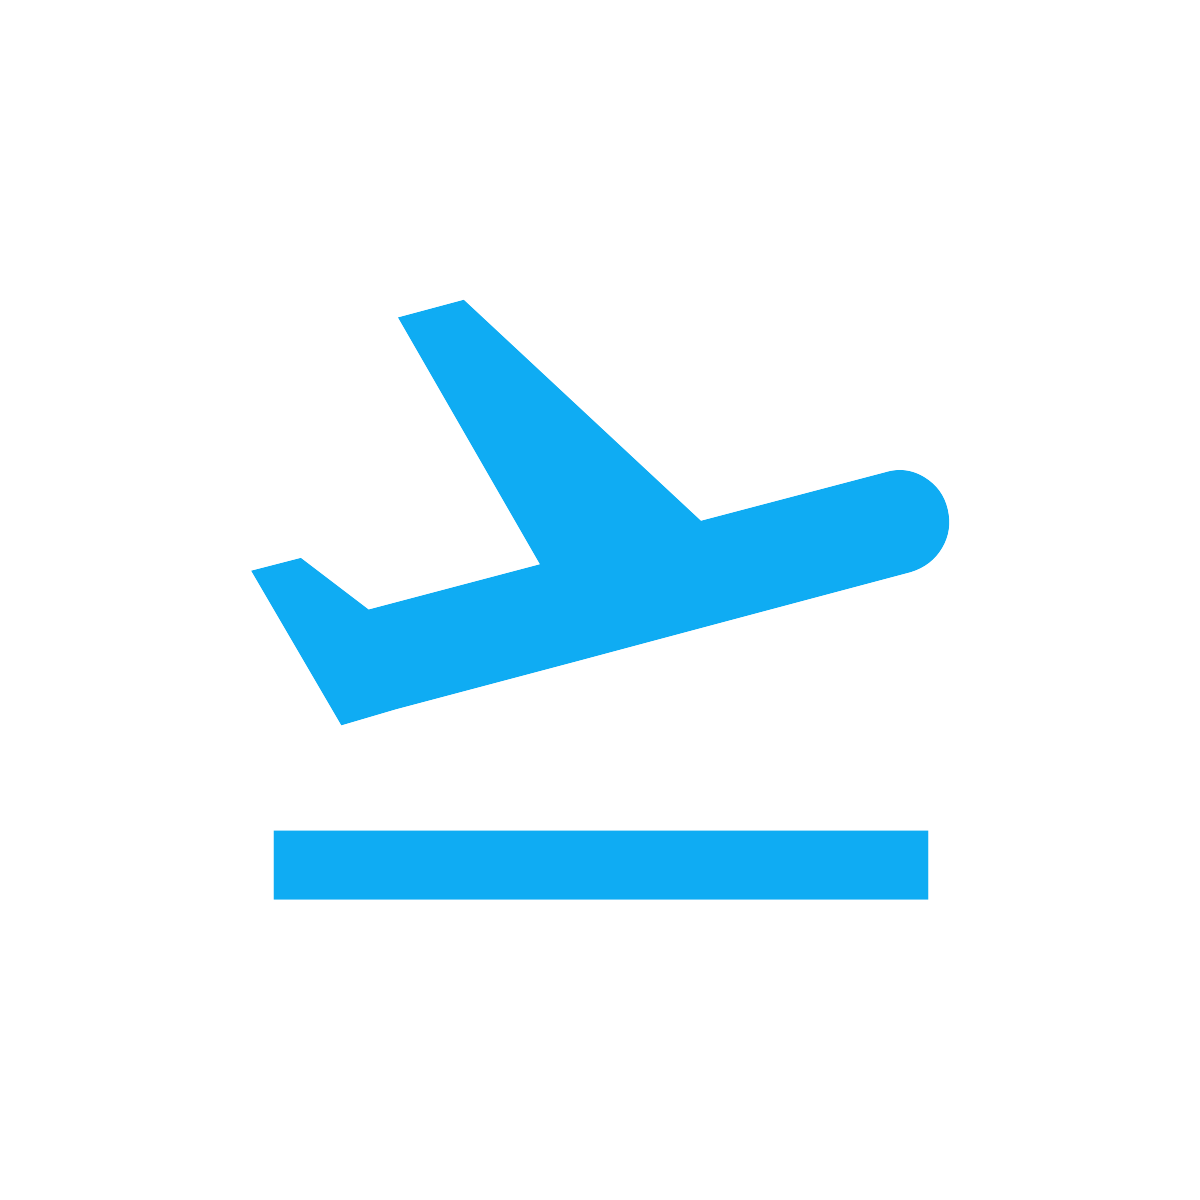 material-icons_3-0-1_flight-takeoff_700_250_0facf3_none